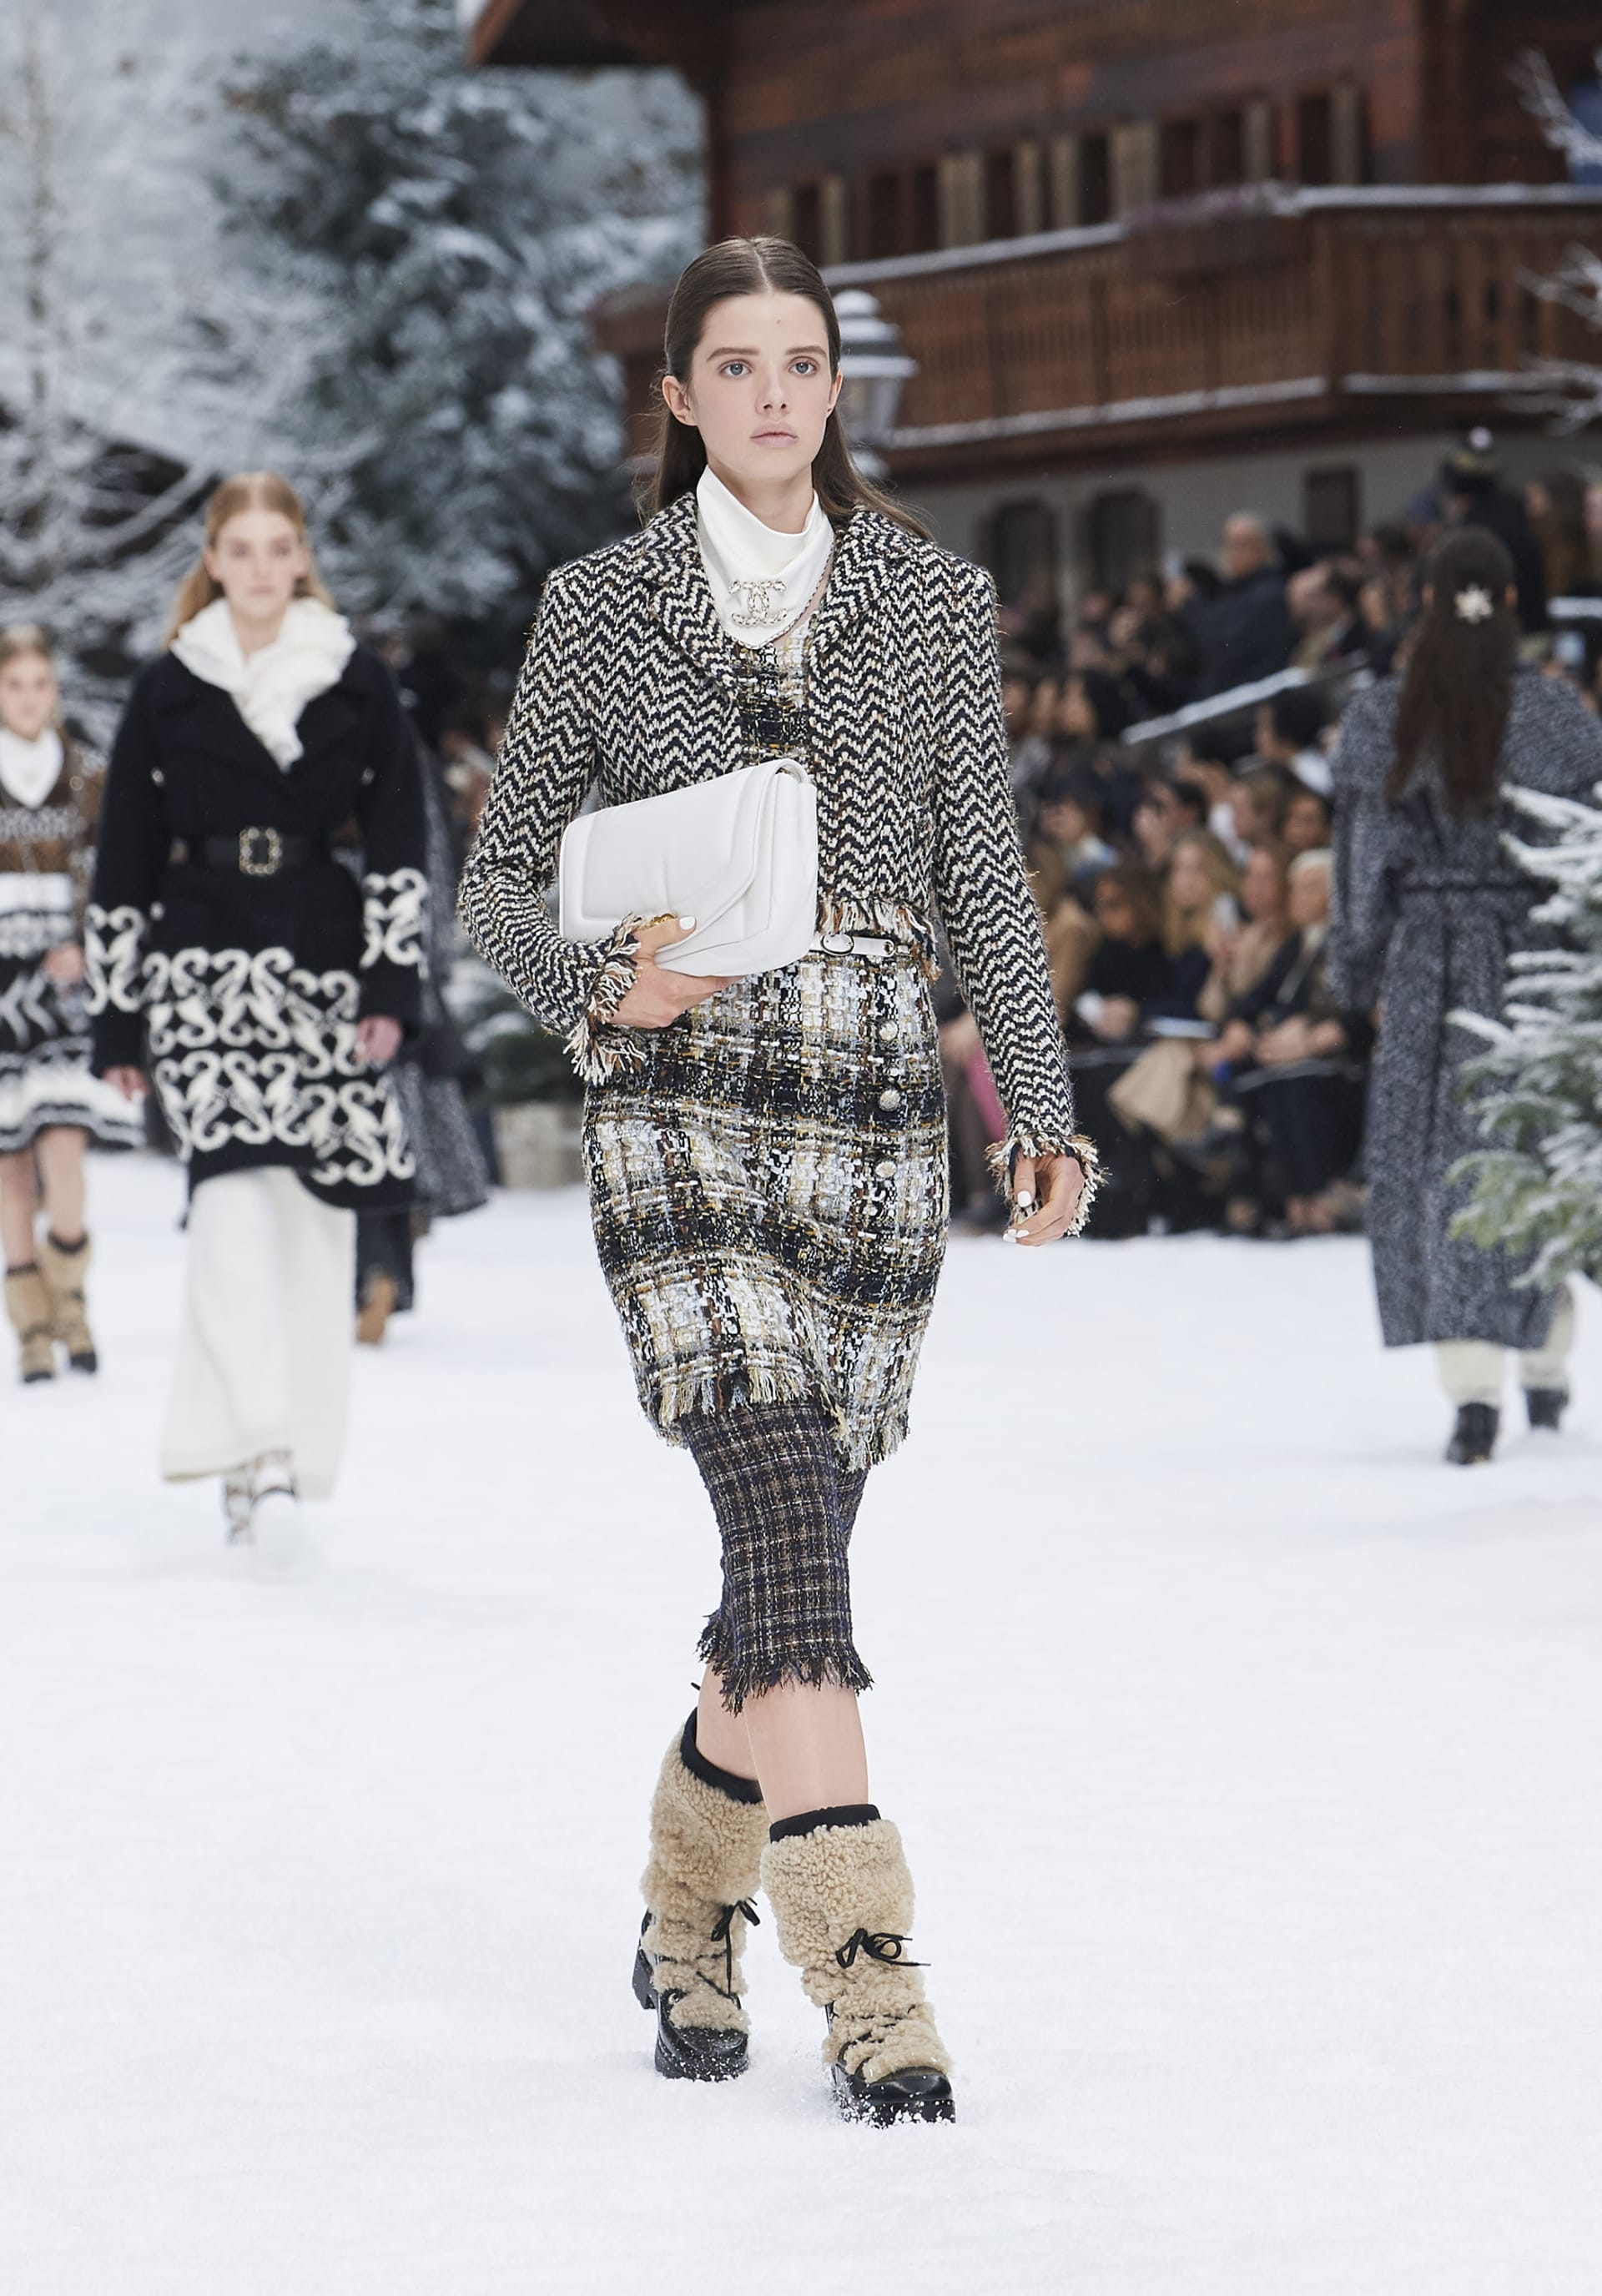 View 1 - Look 20 - Fall-Winter 2019/20